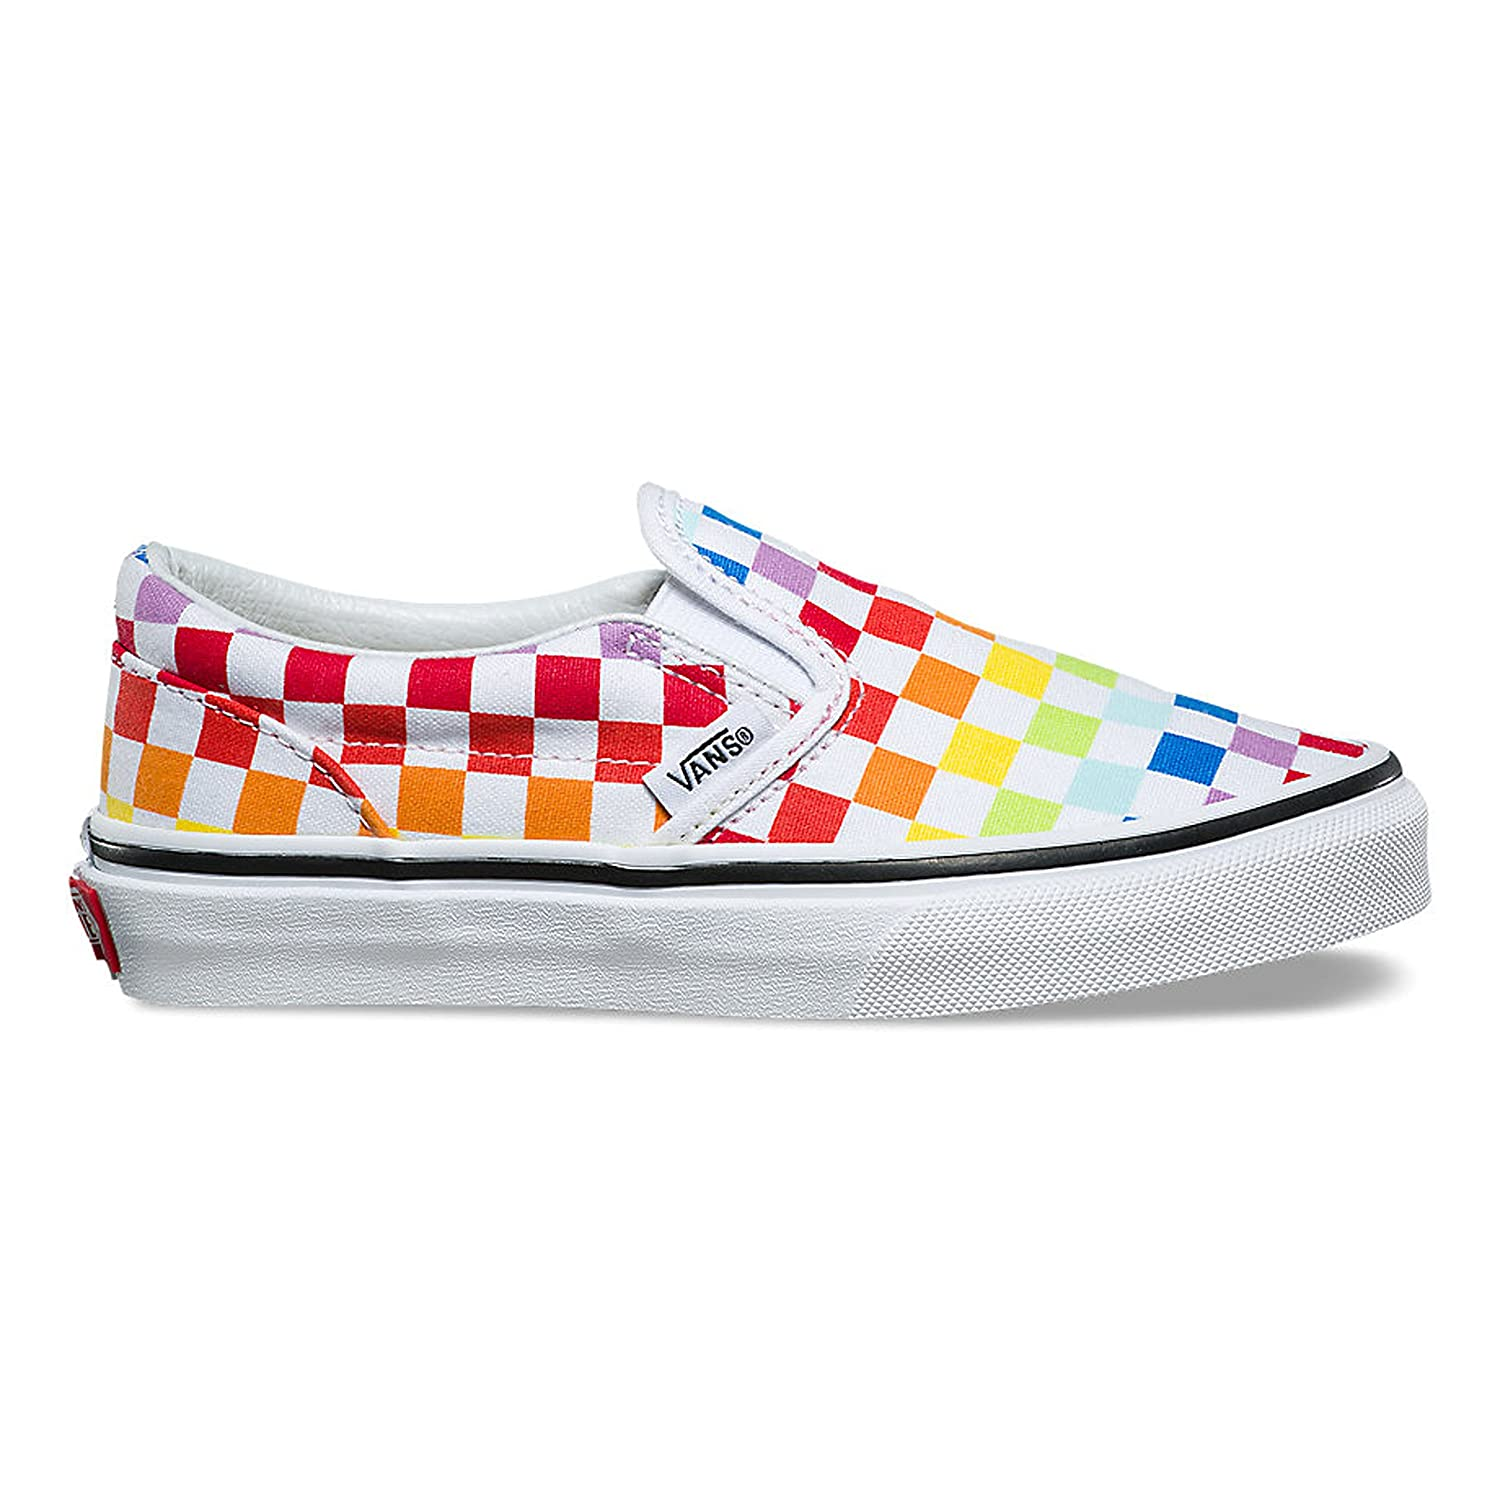 79a636462b400f Vans Kids Classic Slip-On (Checkerboard) Rainbow True White VN0A32QIU09  Kids Size 7  Amazon.co.uk  Shoes   Bags